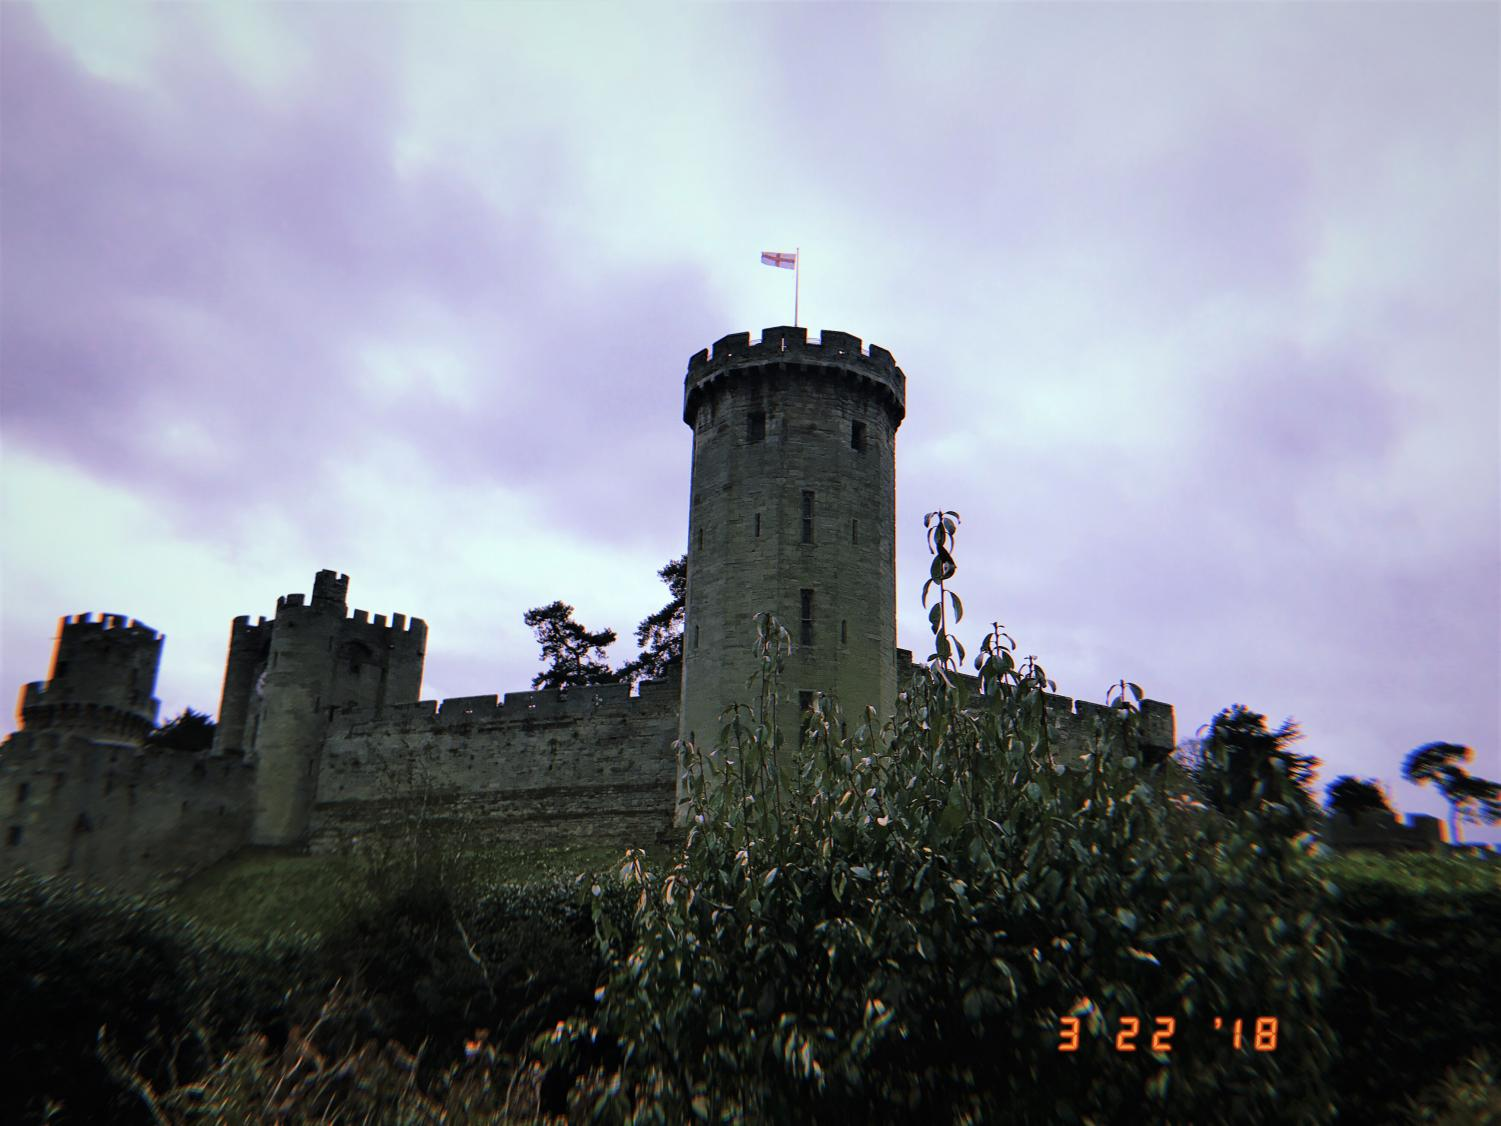 On+day+two%2C+students+explore+the+oldest+castle+in+England.+Warwick+Castle%2C+built+in+1068+by+William+the+Conqueror%2C+was+home+to+many+princes%2C+princess%2C+dutches%2C+and+lords+over+the+span+of+hundreds+of+years.+Within+the+castle+walls%2C+an+interactive+